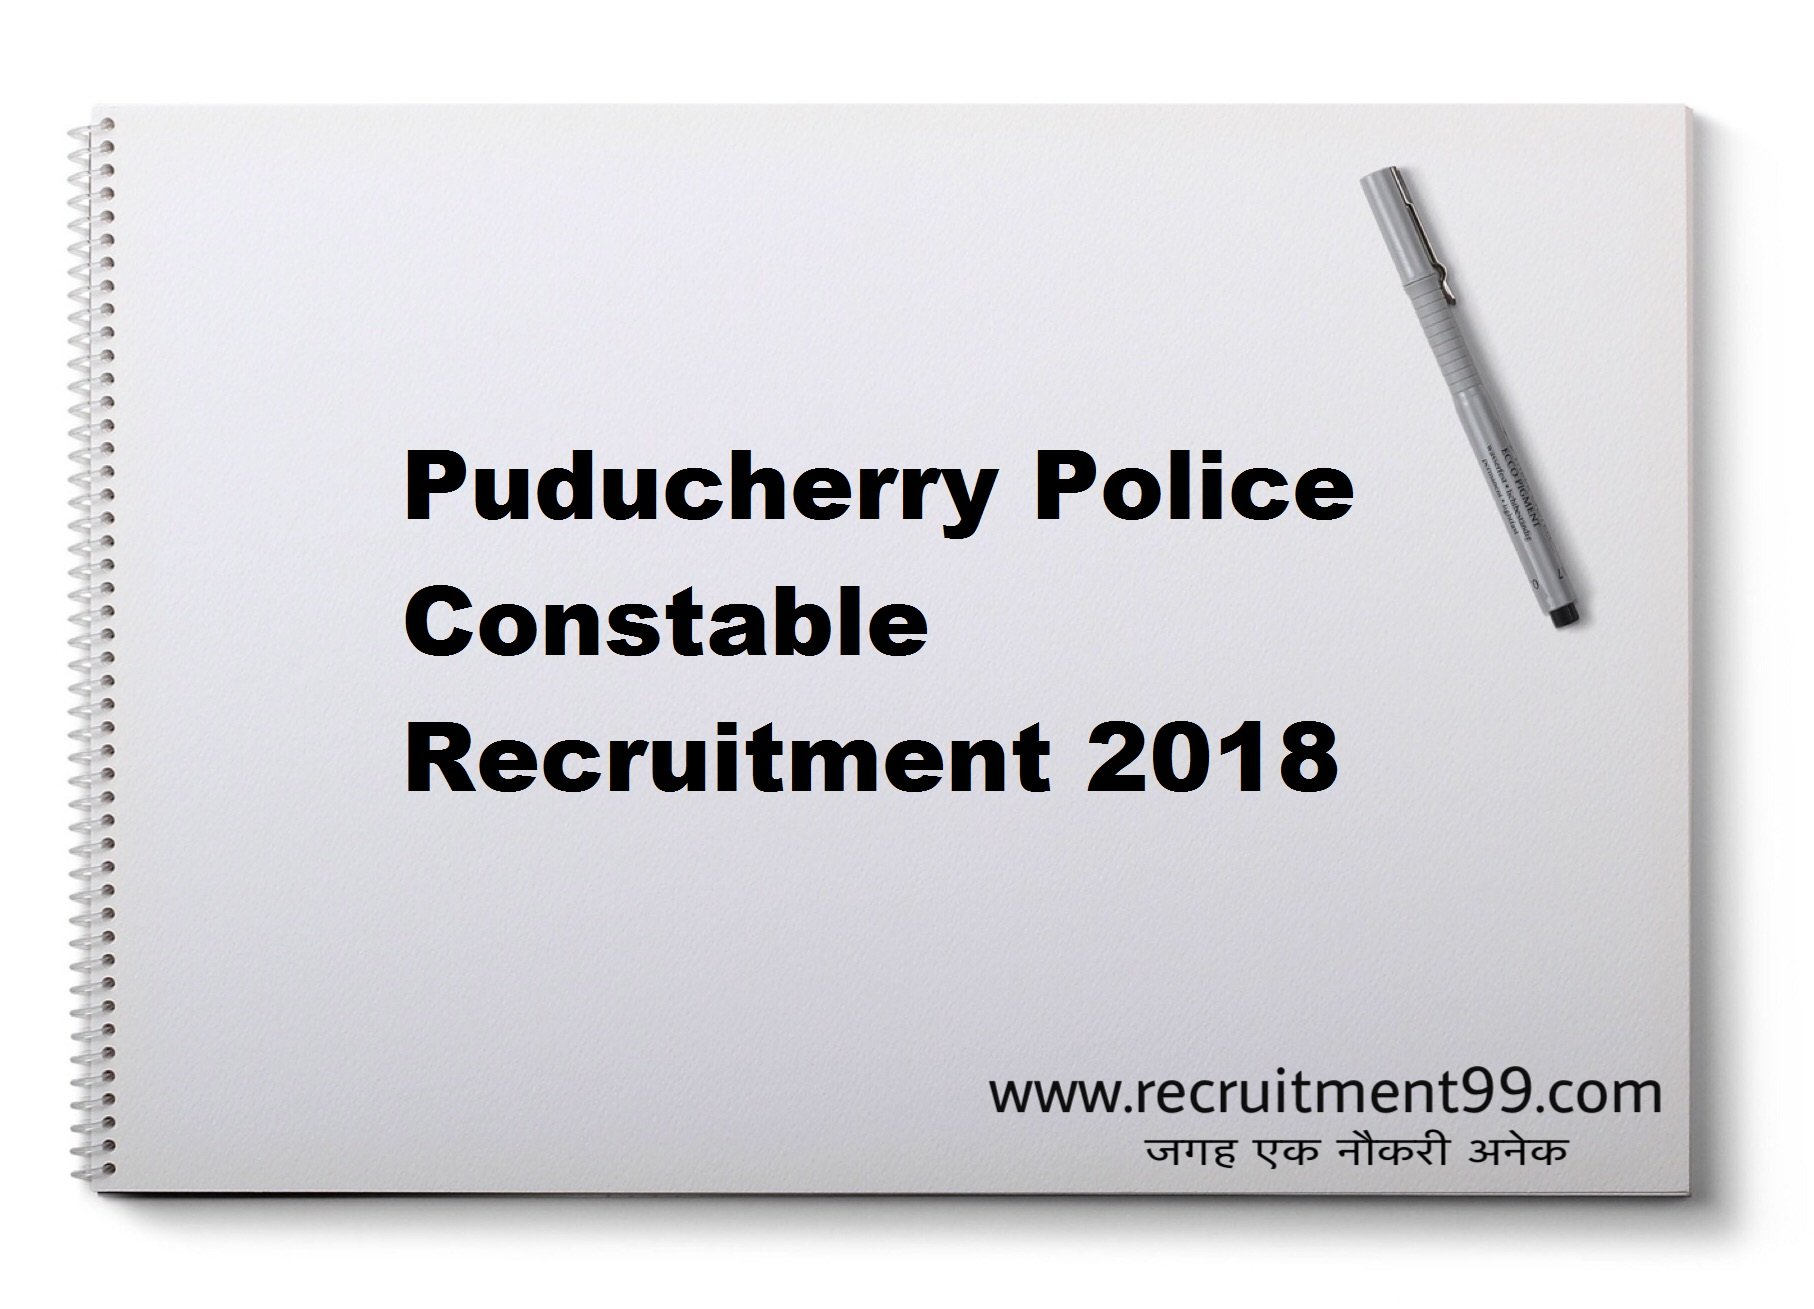 Puducherry Police Constable Recruitment Admit Card Result 2018